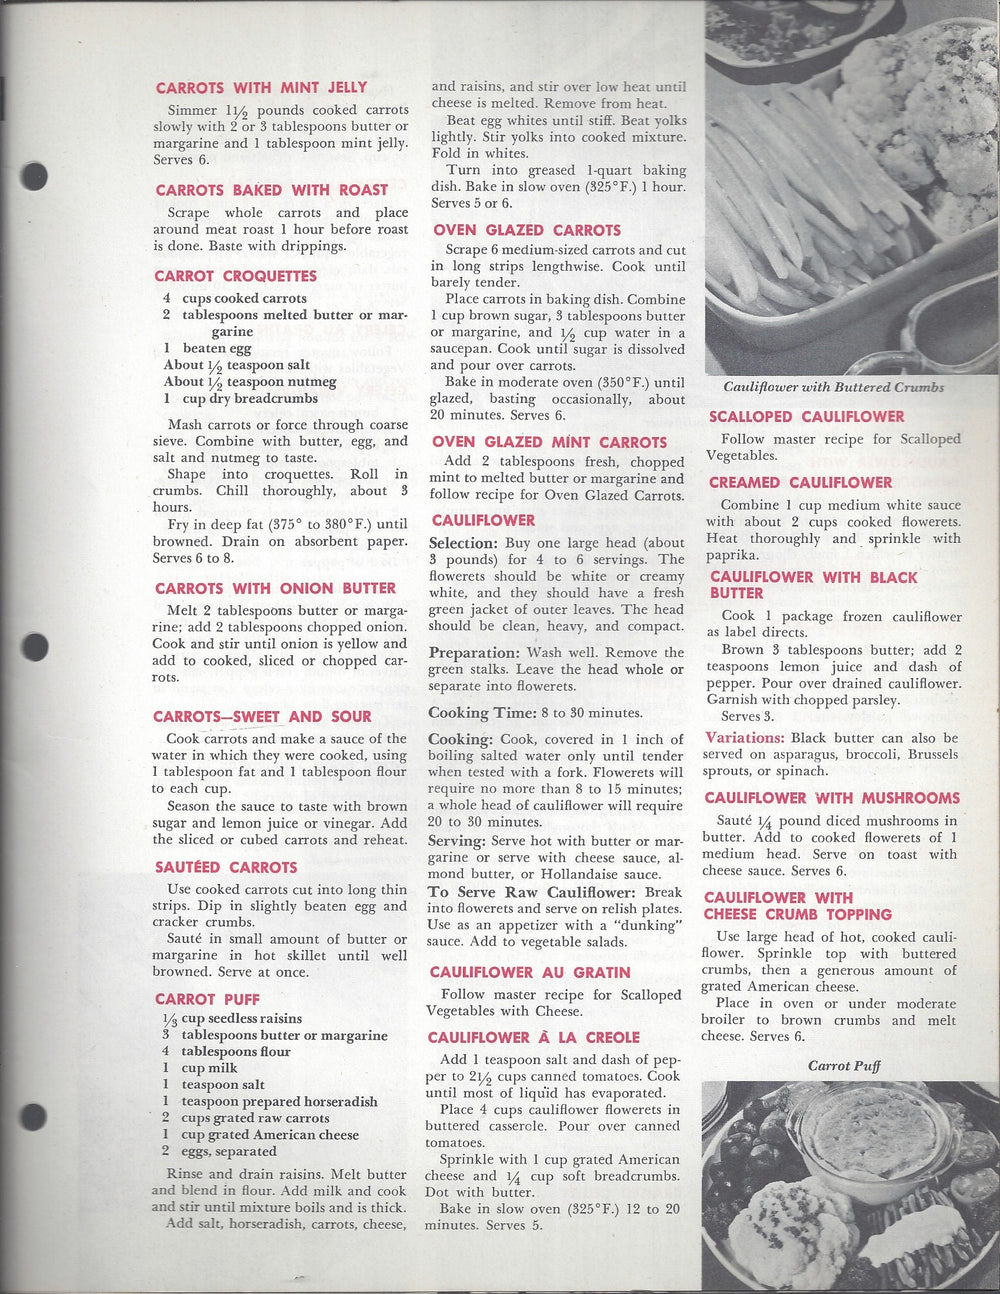 Mary Margaret McBride Encyclopedia of Cooking Cook Book Deluxe Edition 1960 (2ND EDITION) (PAGES 1313-1344)